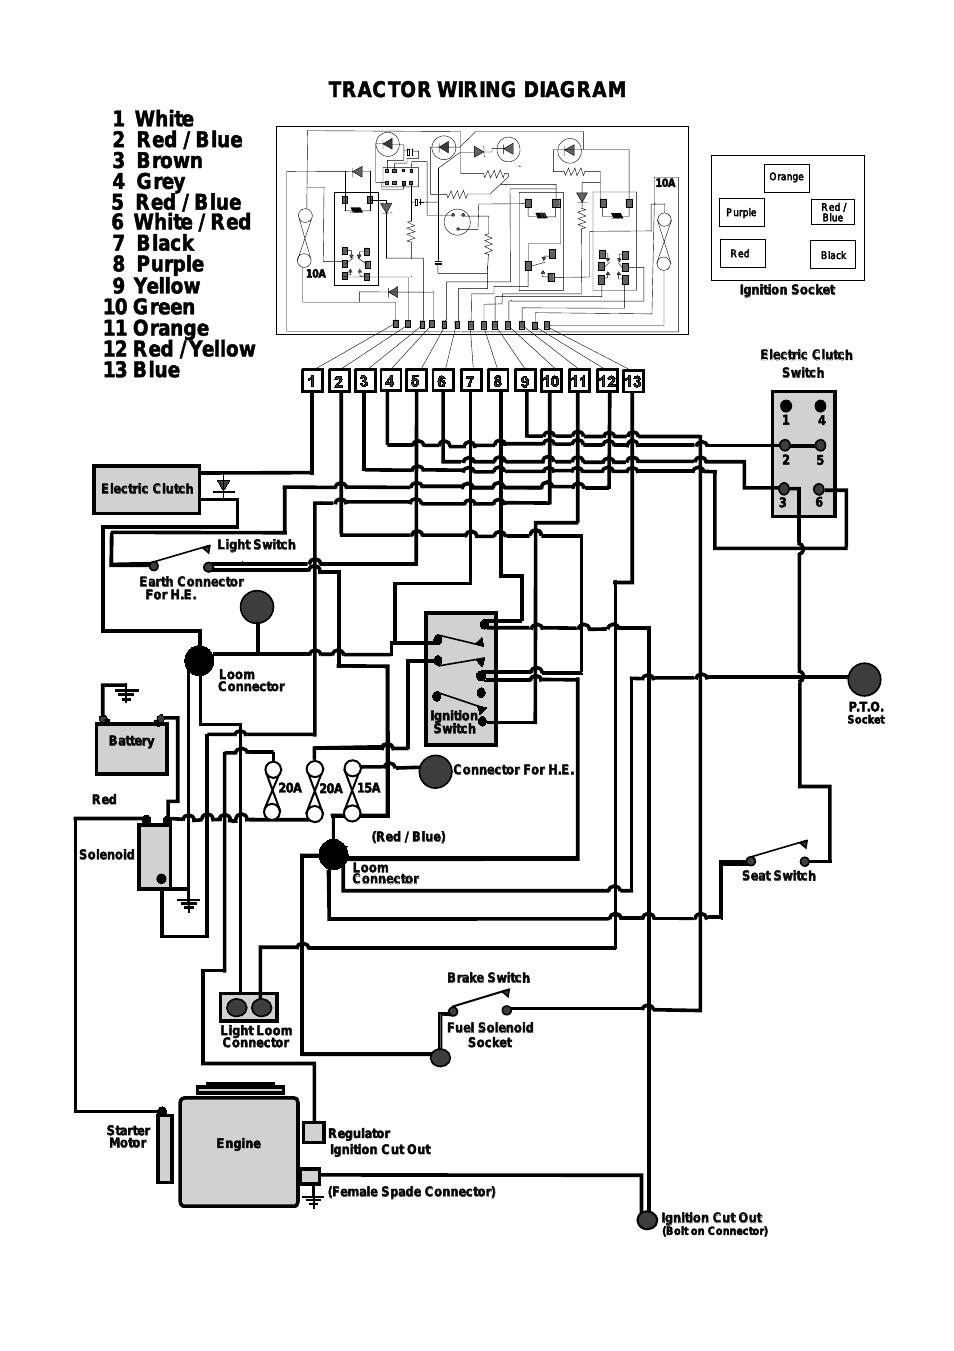 Tractor Wiring Diagram  U2013 Countax Garden Tractor User